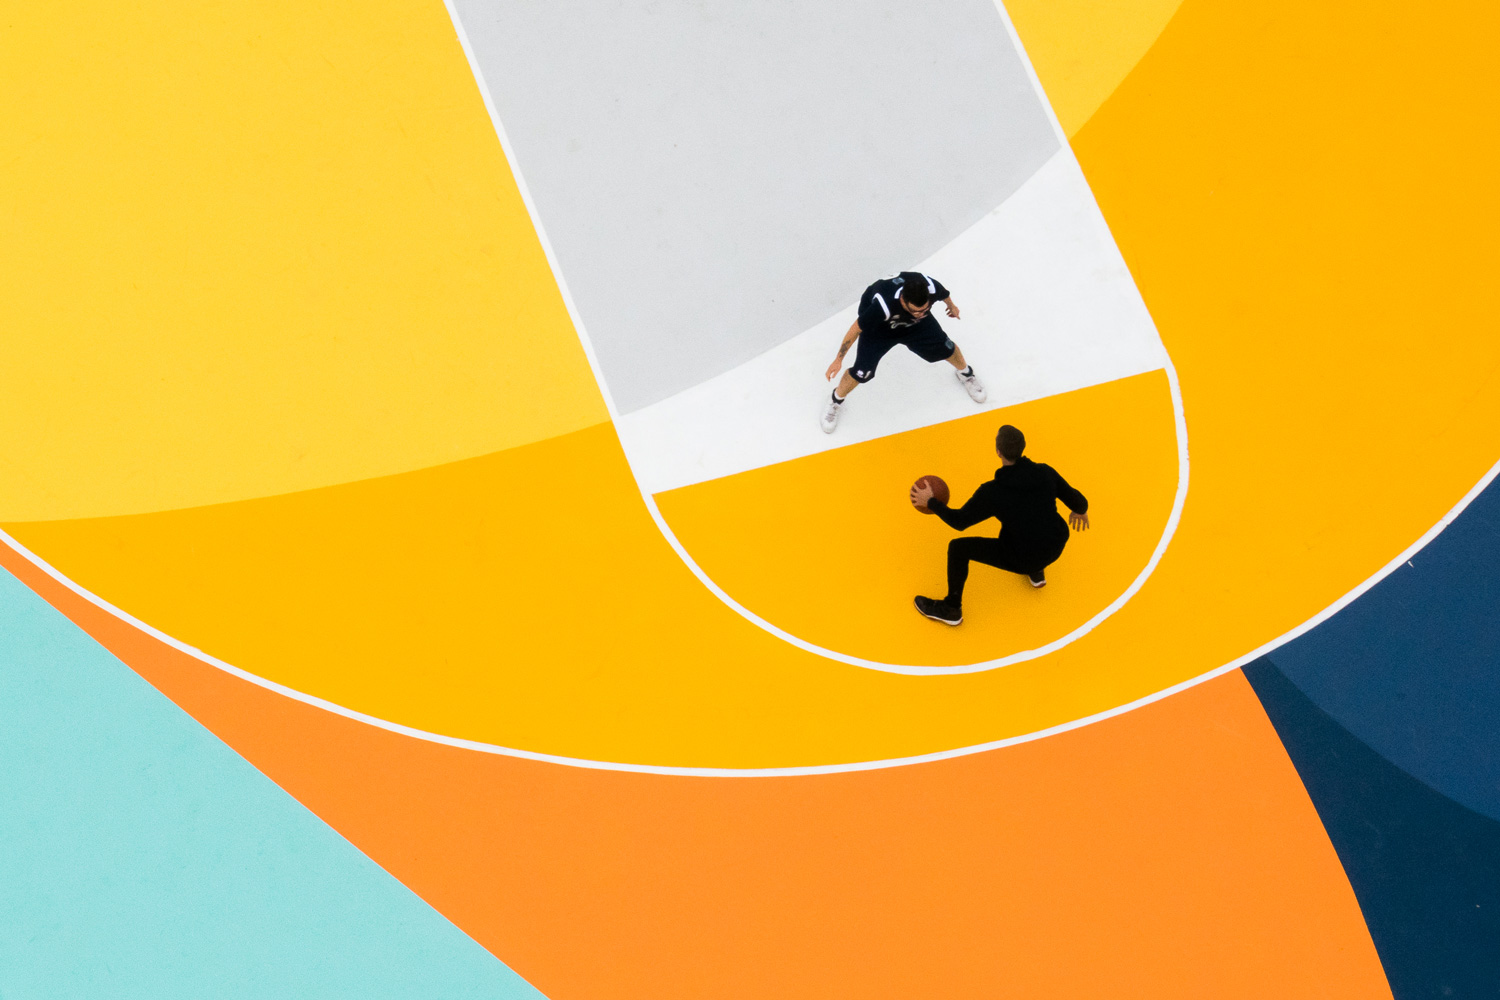 Gue Basketball Court in Italy | Yellowtrace